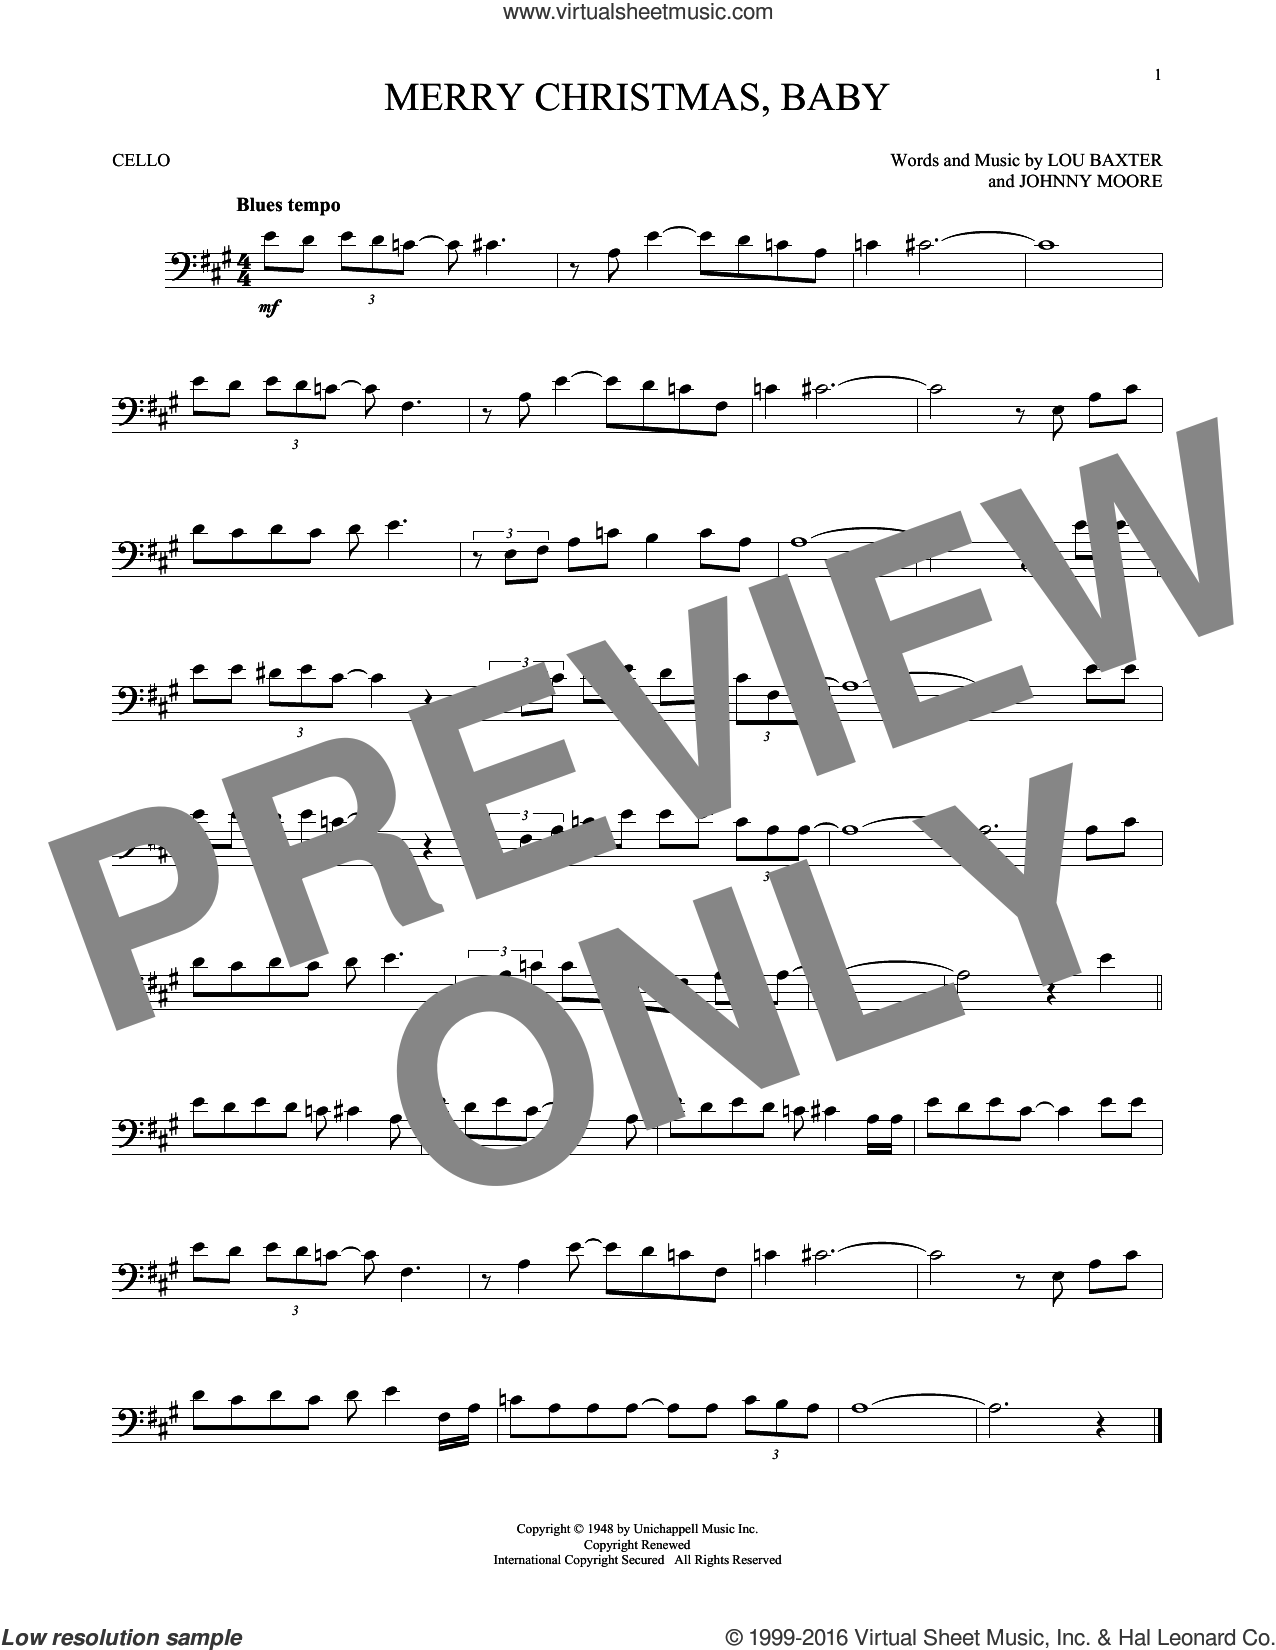 Merry Christmas, Baby sheet music for cello solo by Elvis Presley, Johnny Moore and Lou Baxter, intermediate skill level